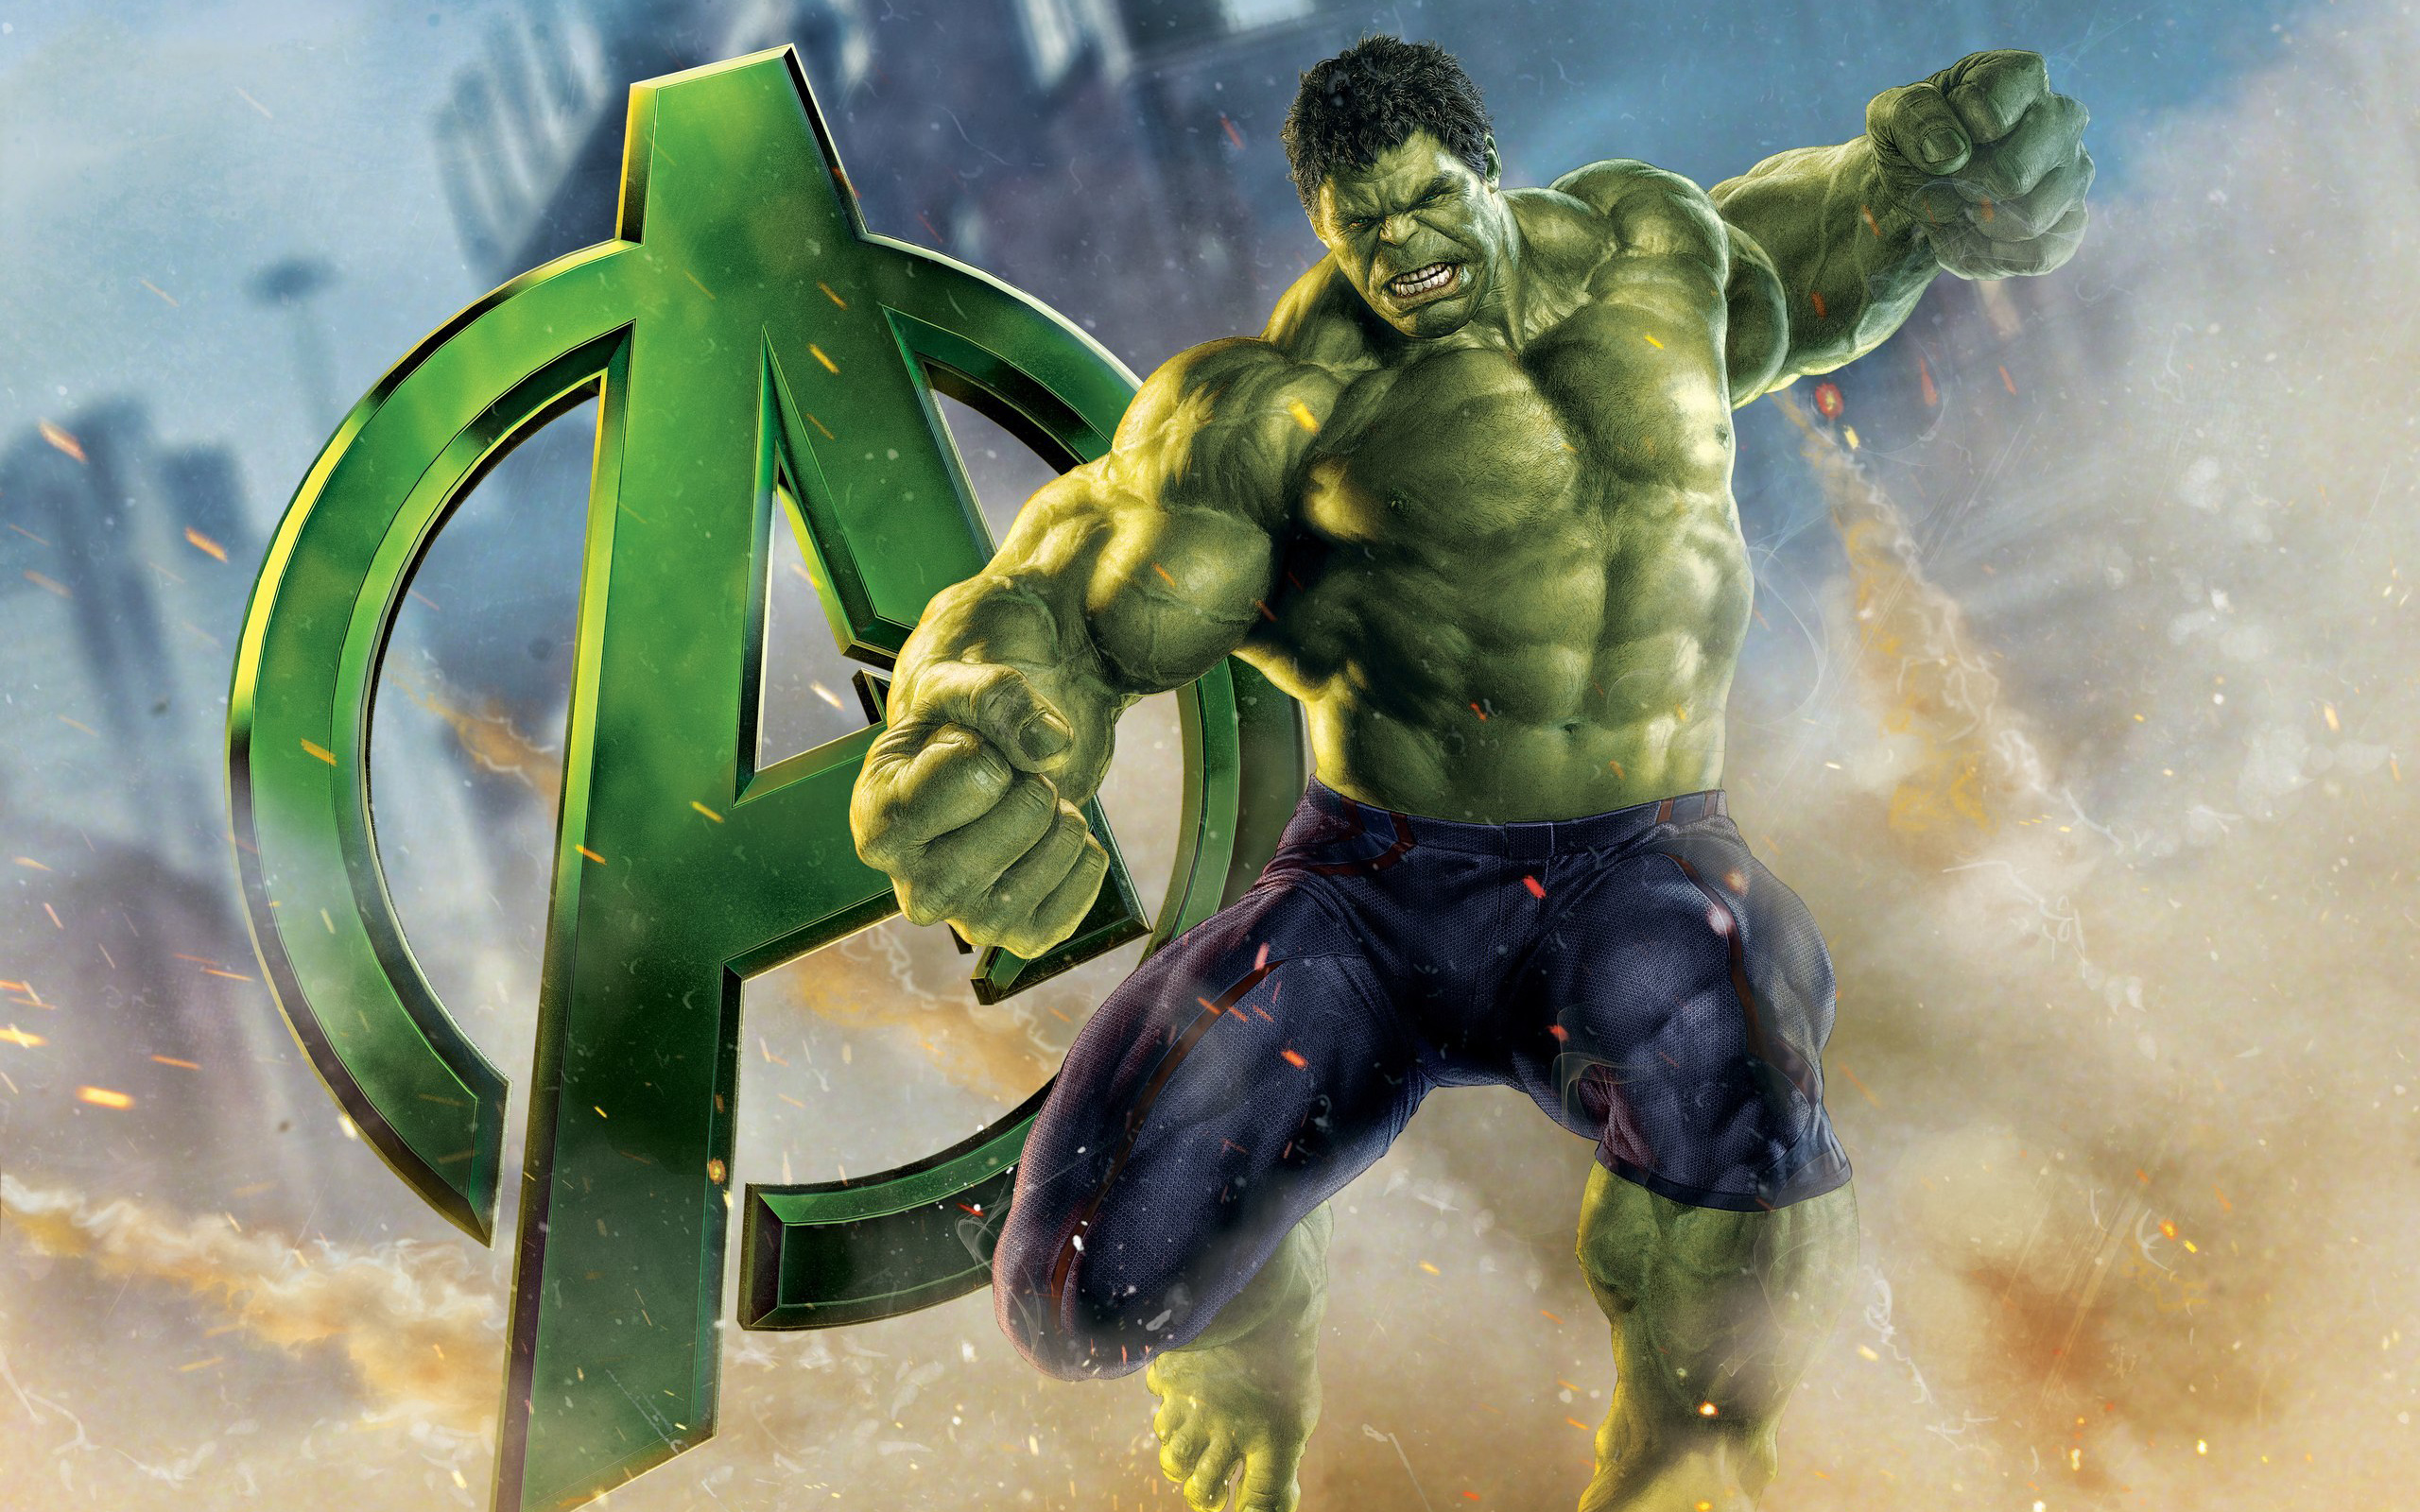 hulk 4K wallpapers for your desktop or mobile screen and easy 2560x1600